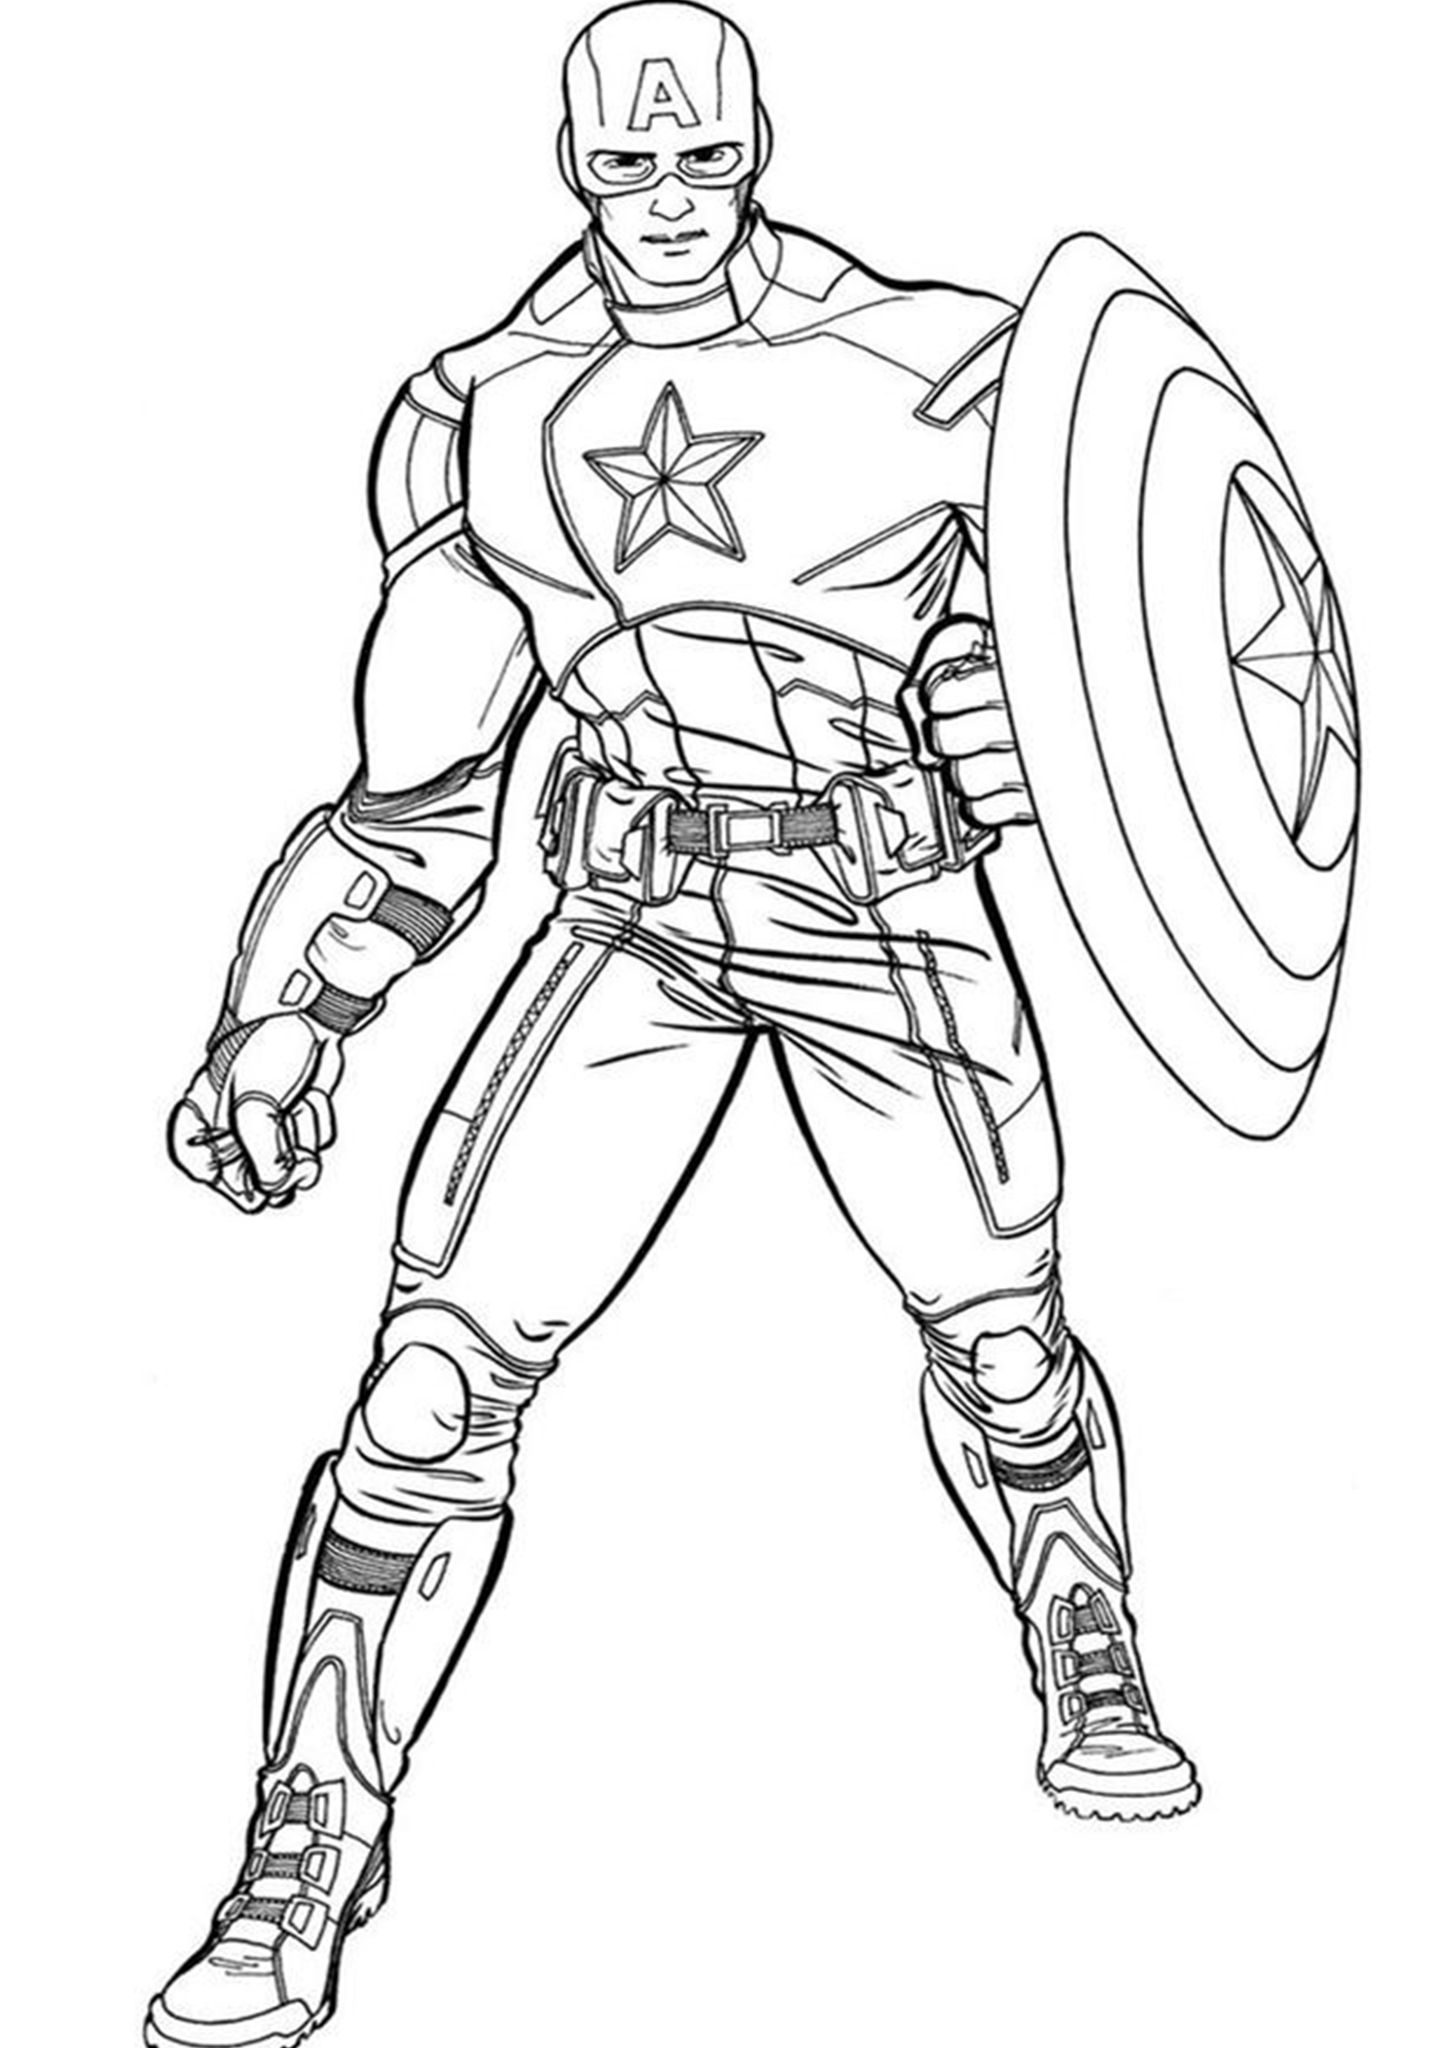 Free Easy To Print Captain America Coloring Pages Avengers Coloring Pages Captain America Coloring Pages Superhero Coloring Pages